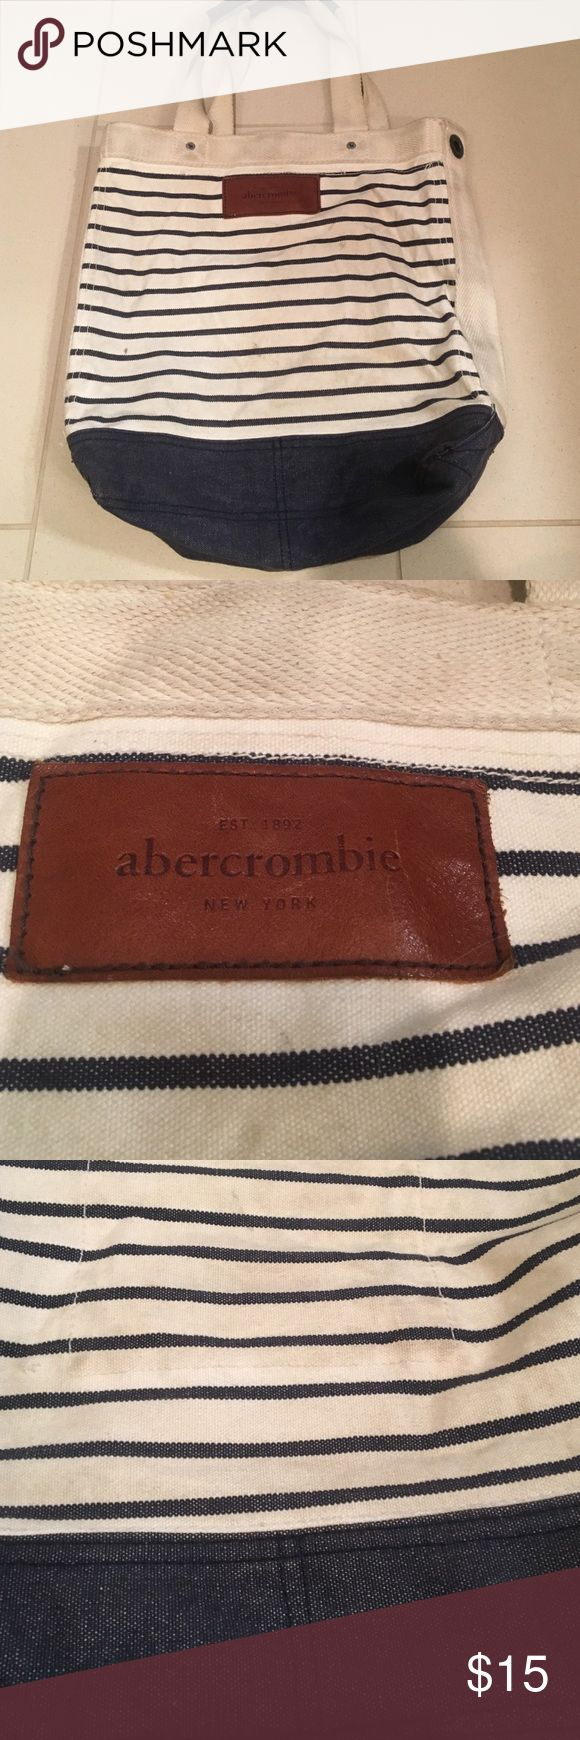 Abercrombie Tote Bag Well used tote bag, large enough to fit a laptop. Great for beach trips! Abercrombie & Fitch Bags Totes